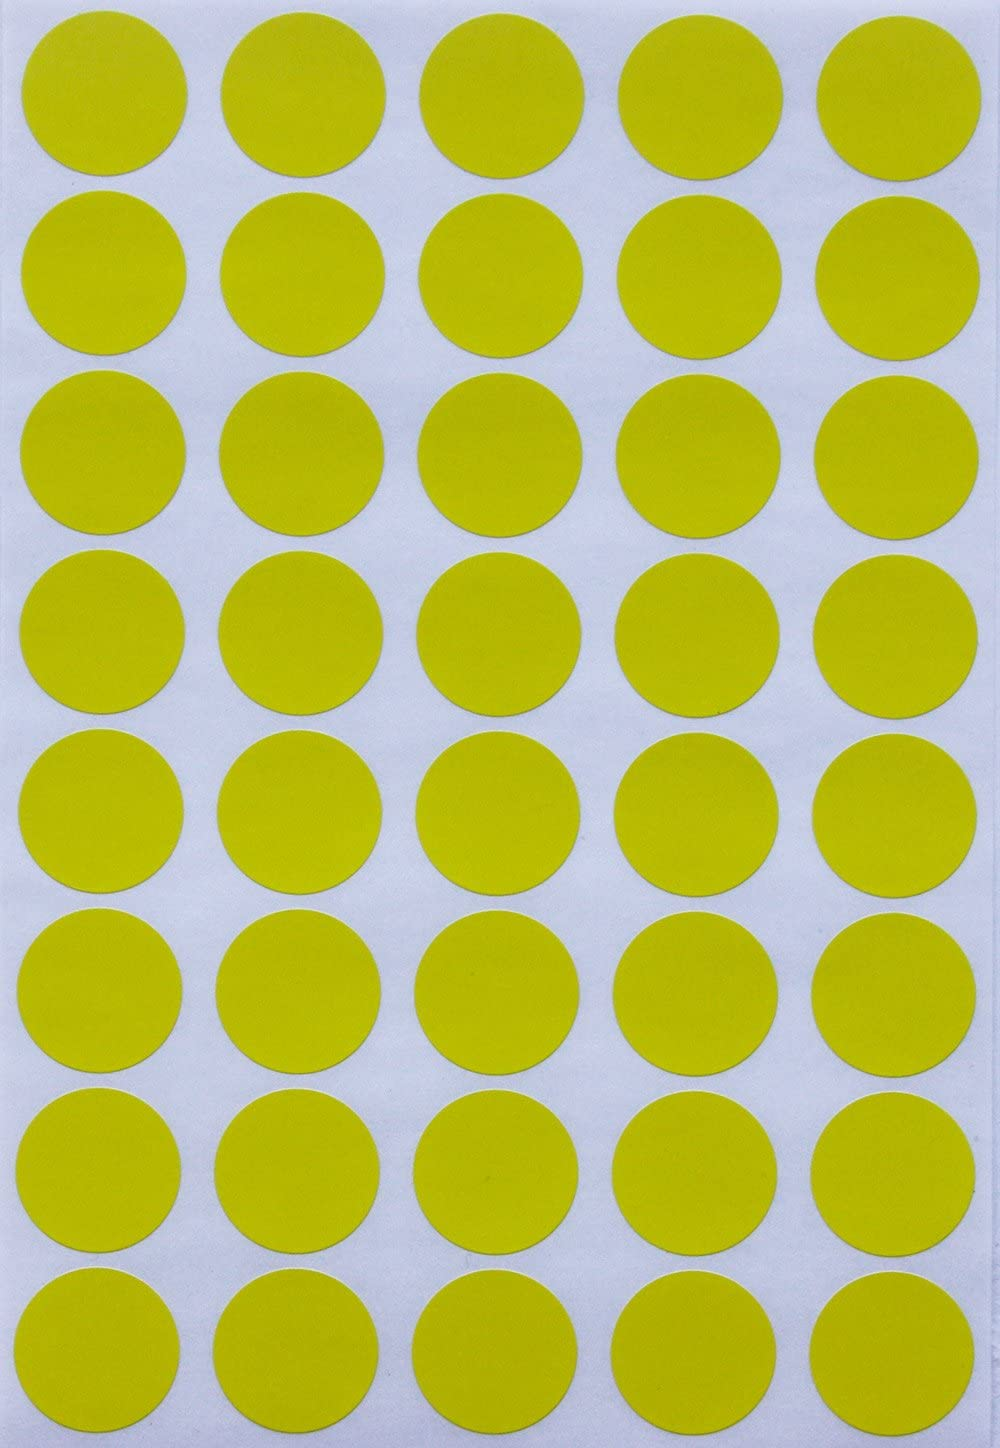 Royal Green Color Coding Ranking Ranking integrated 1st place TOP12 Labels Dot i ¾ Sticker Yellow 19mm -